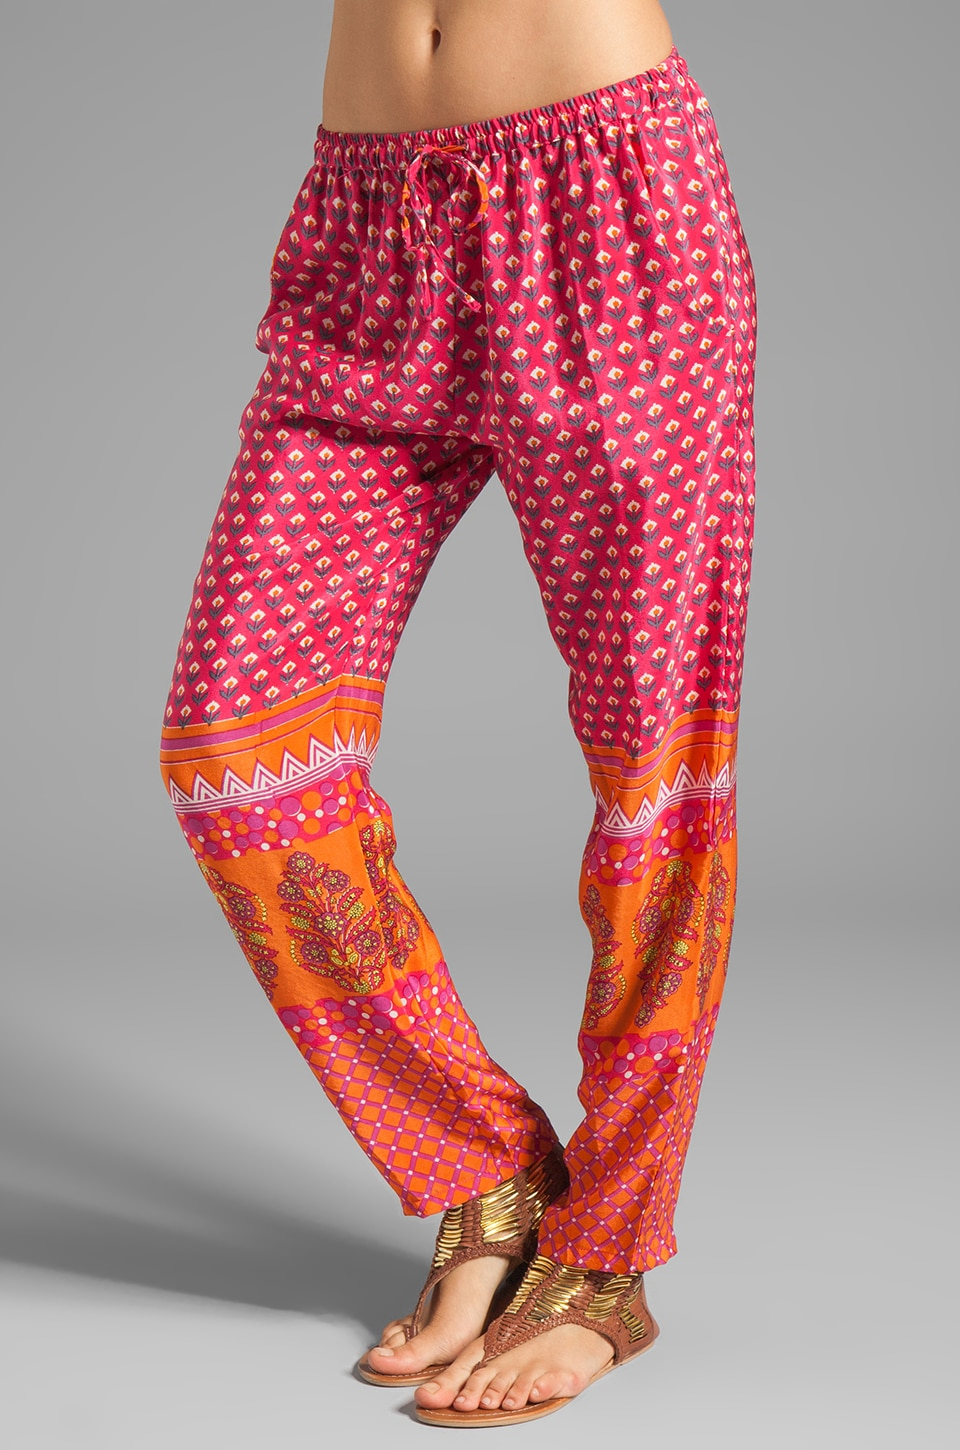 Tolani Carrie Silk Pant in Fuchsia/Orange